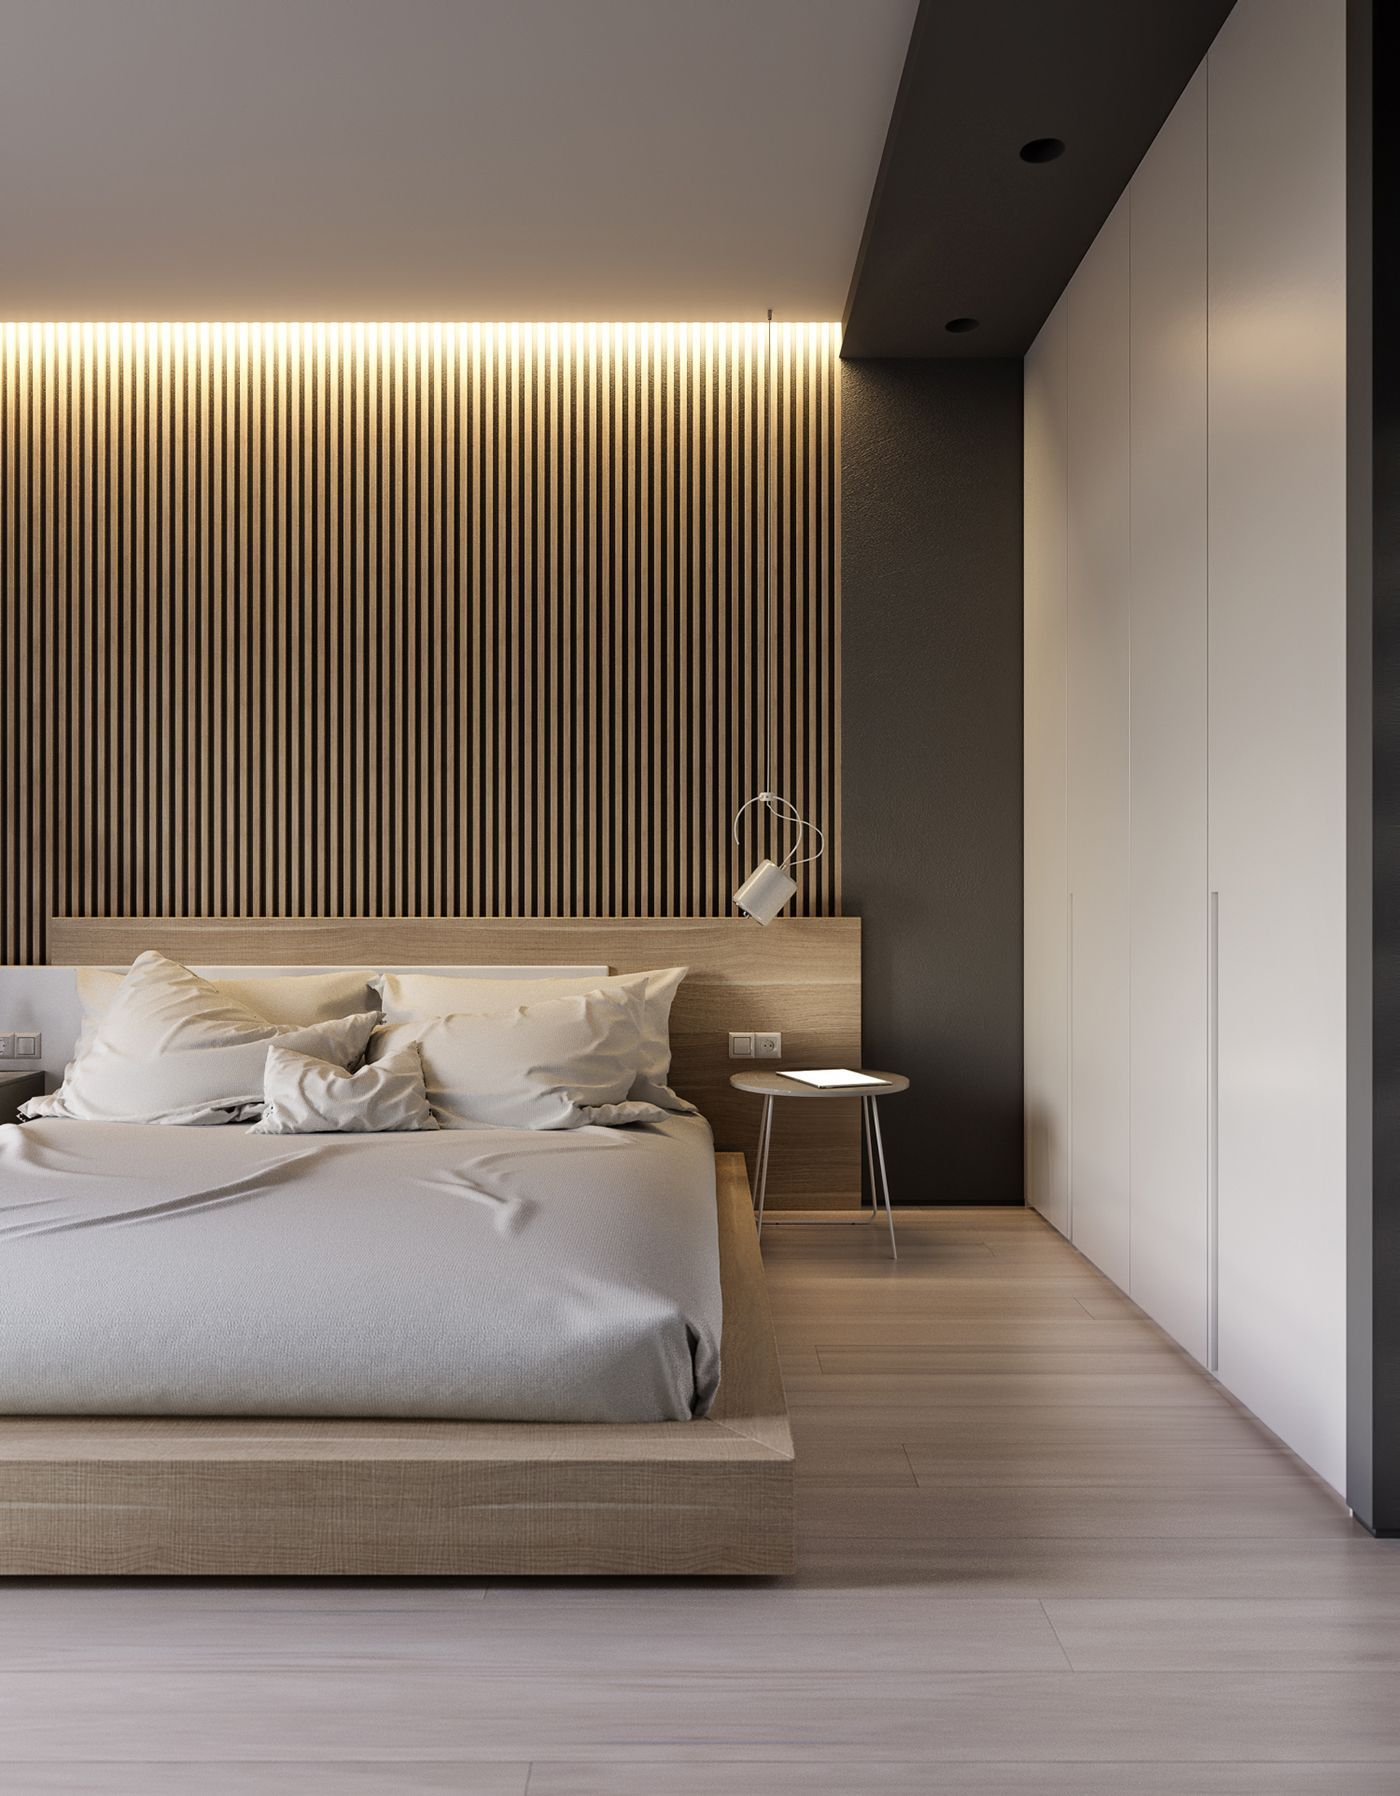 Pin By Hangang On Badroom Pinterest Bedrooms And Design